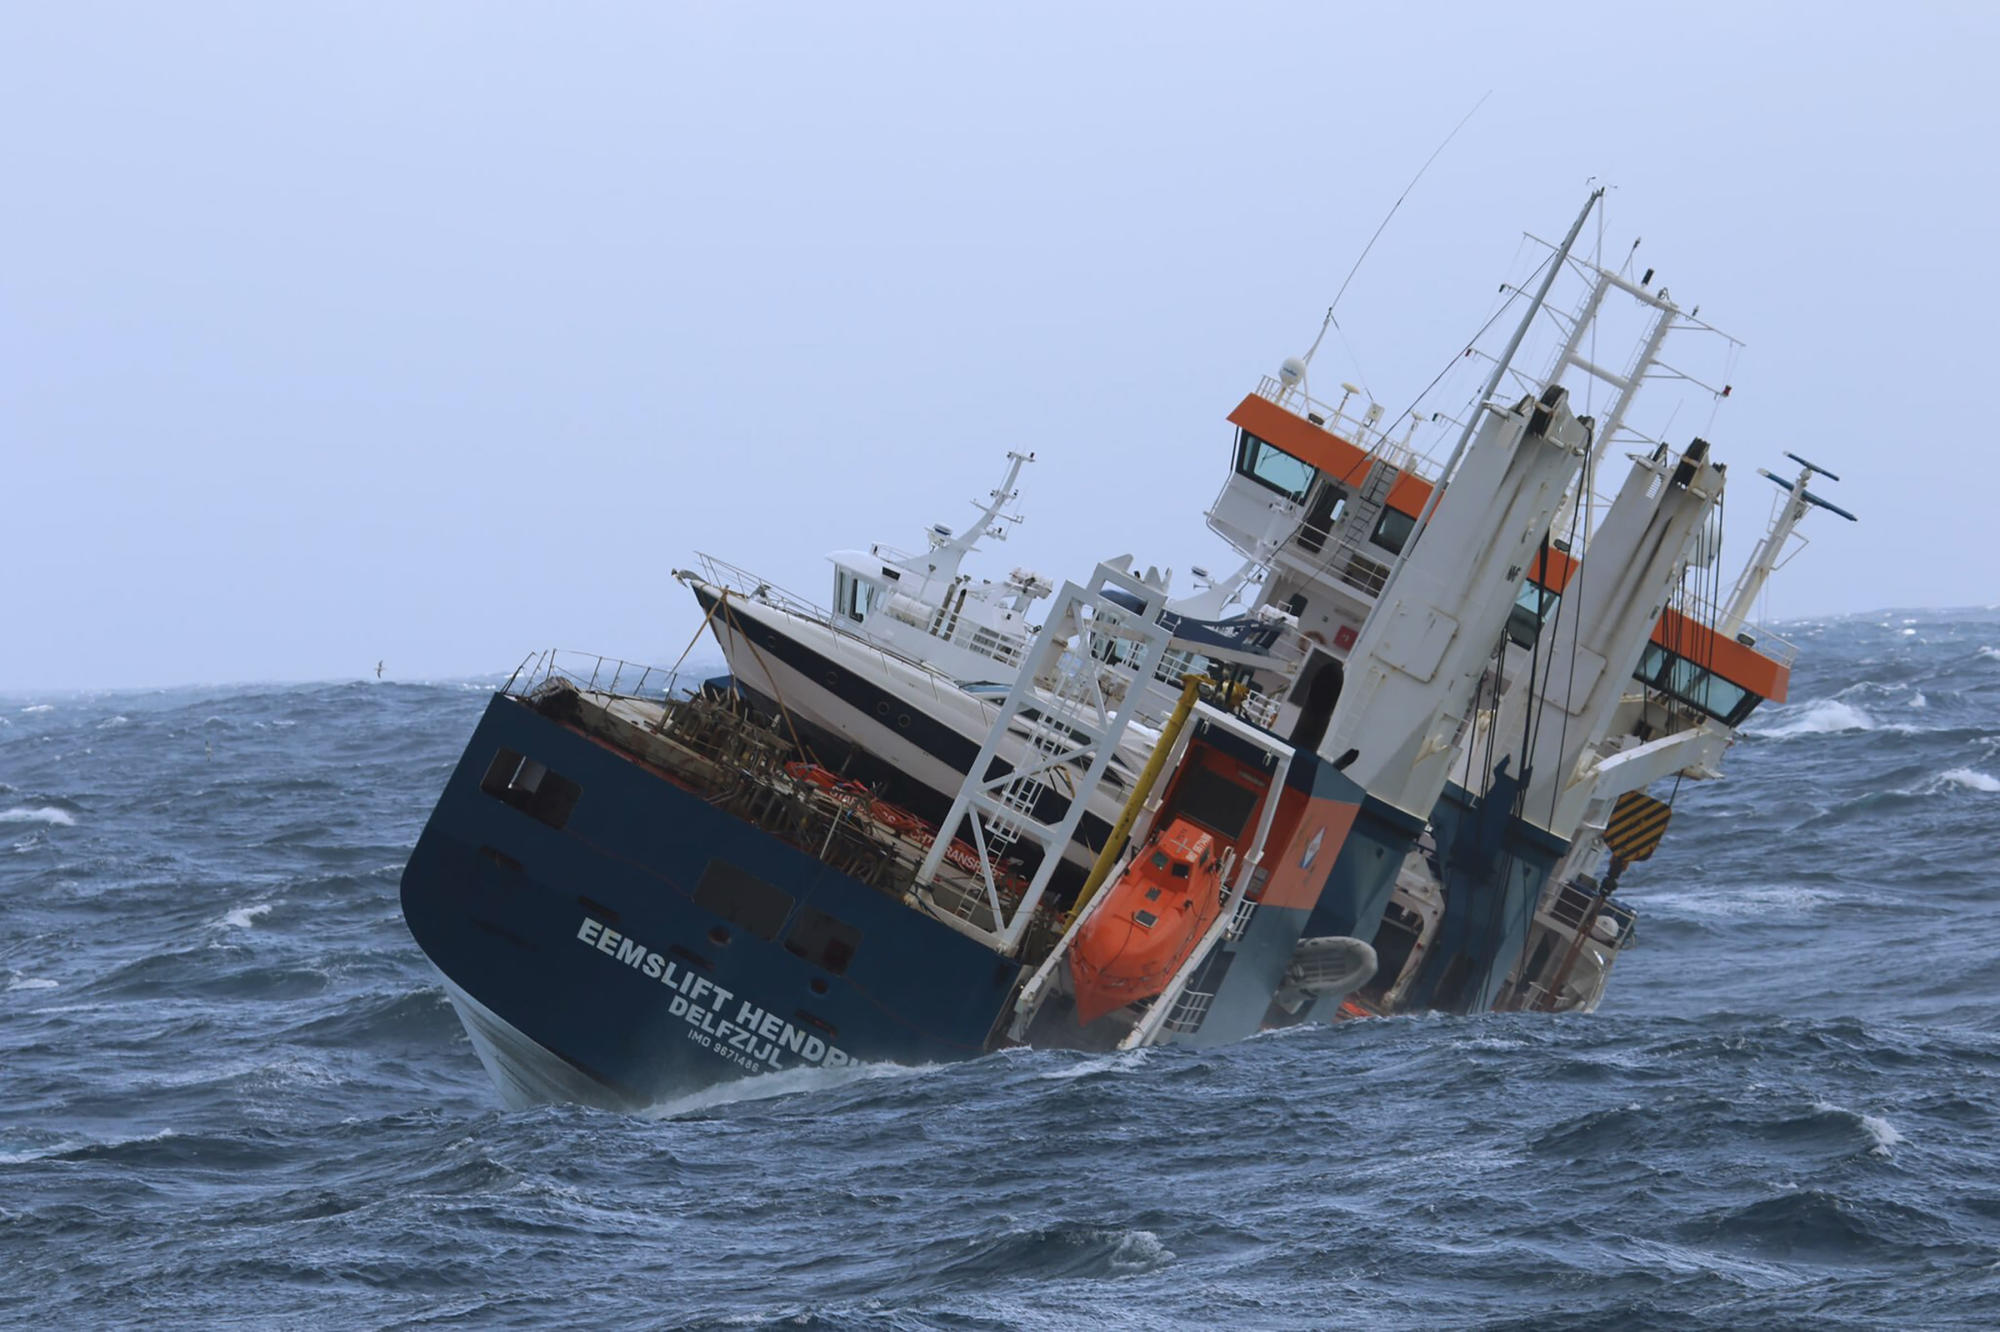 Rescue crews protect Dutch cargo ship adrift in Norway